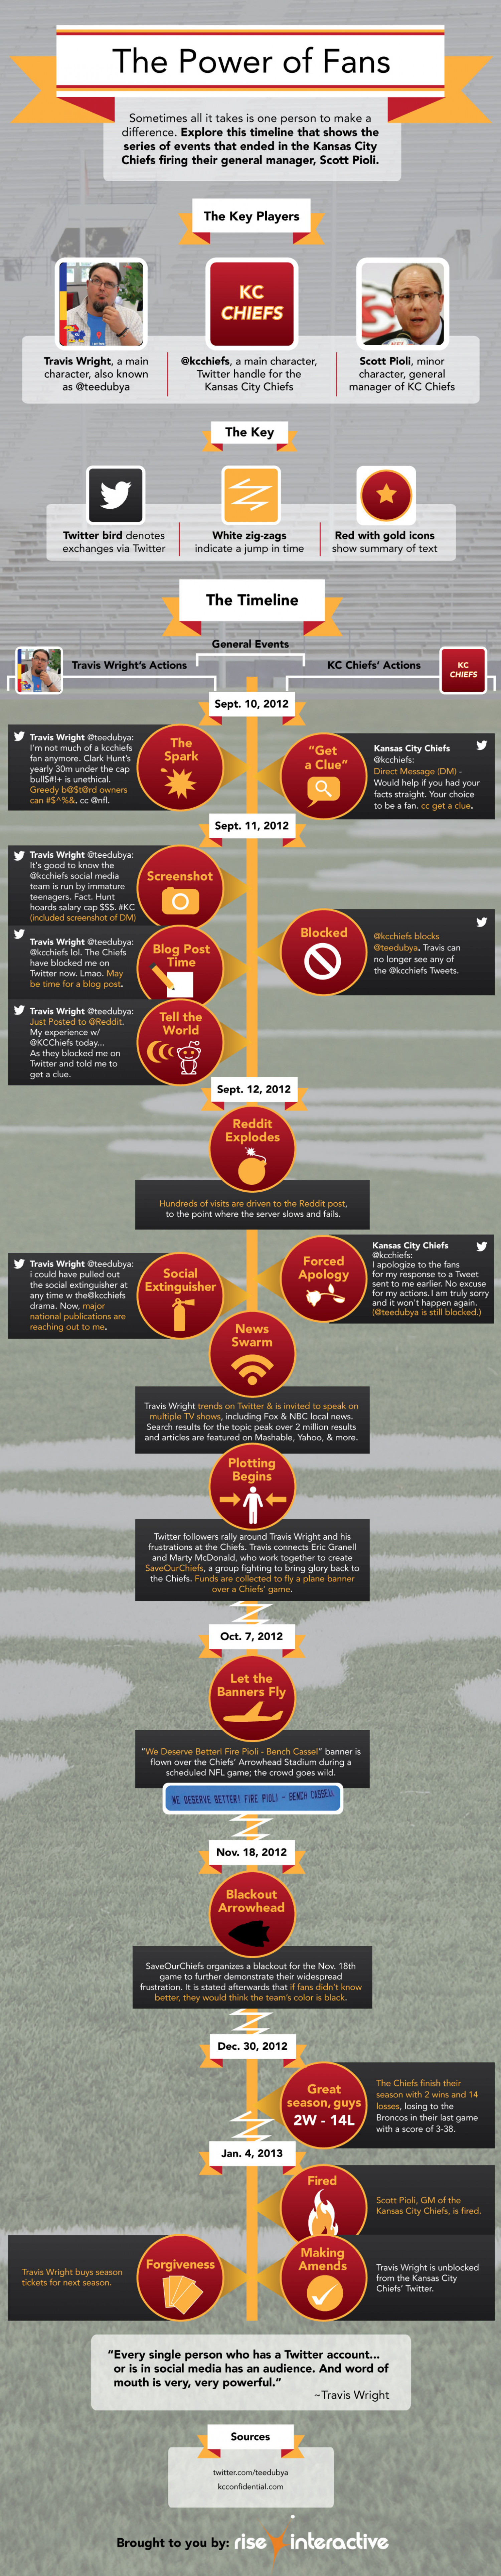 The Power of Fans: Travis Wright vs. KC Chiefs Infographic